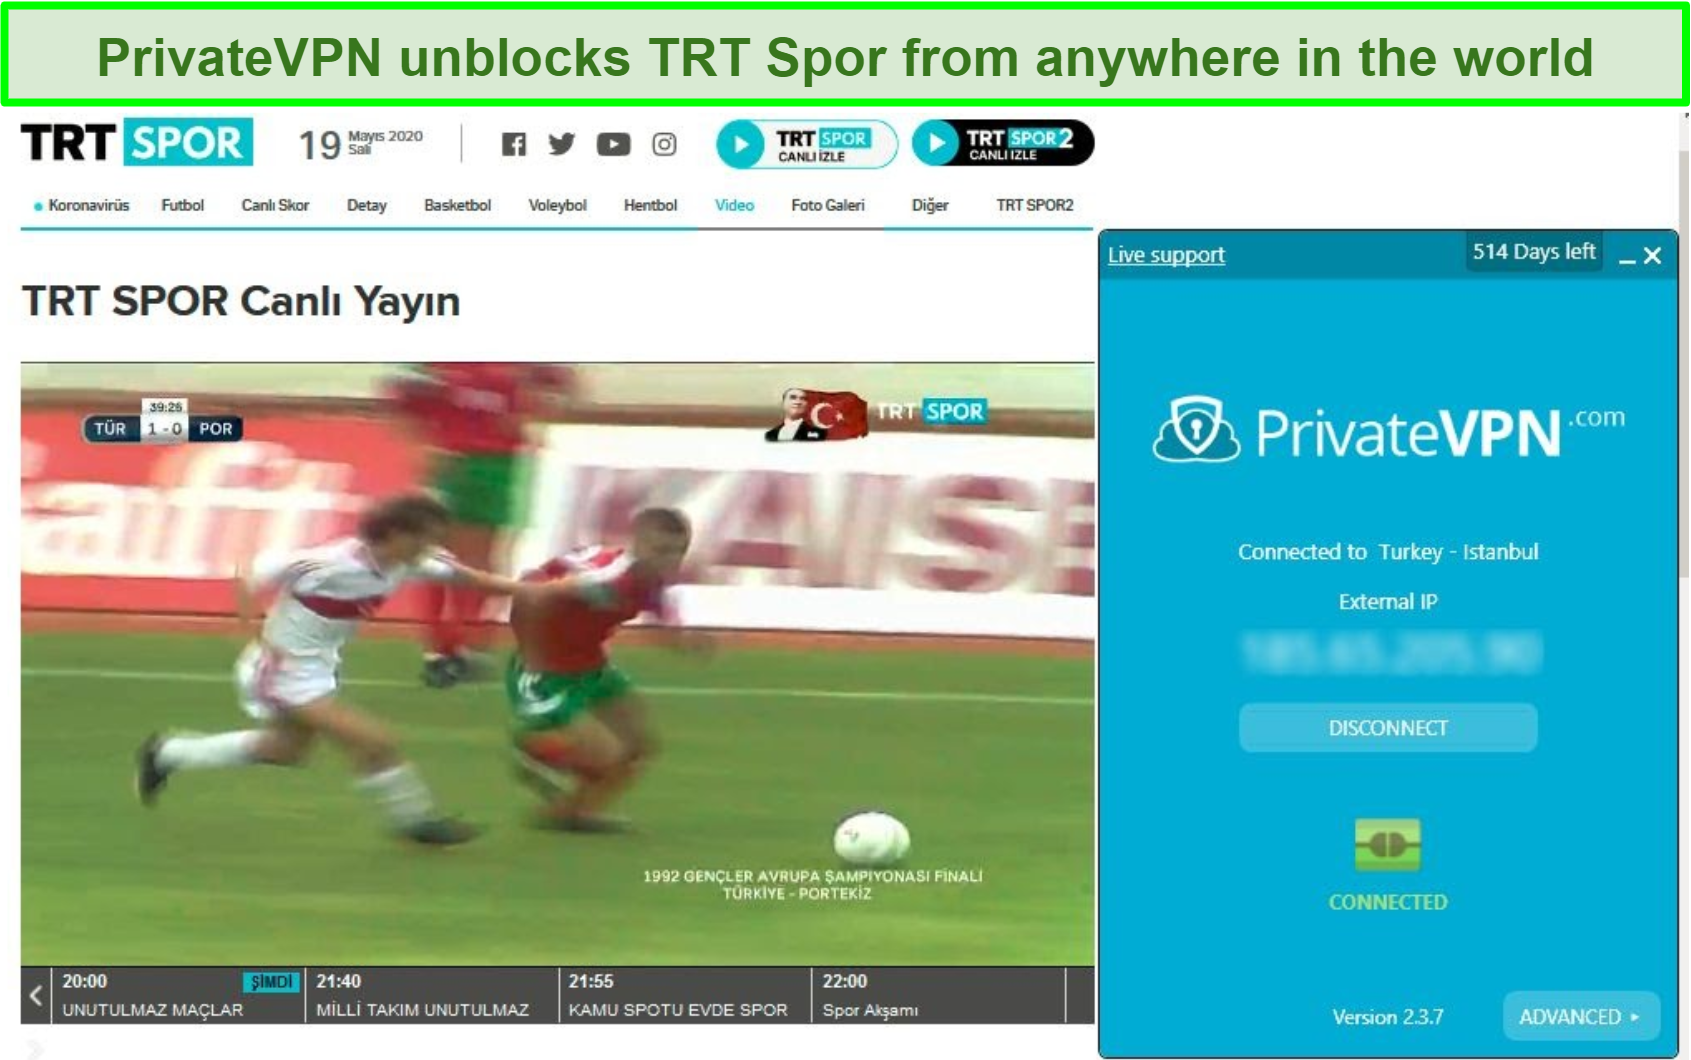 Screenshot of TRT Spor streaming a soccer match with PrivateVPN's user interface connected to the server in Turkey